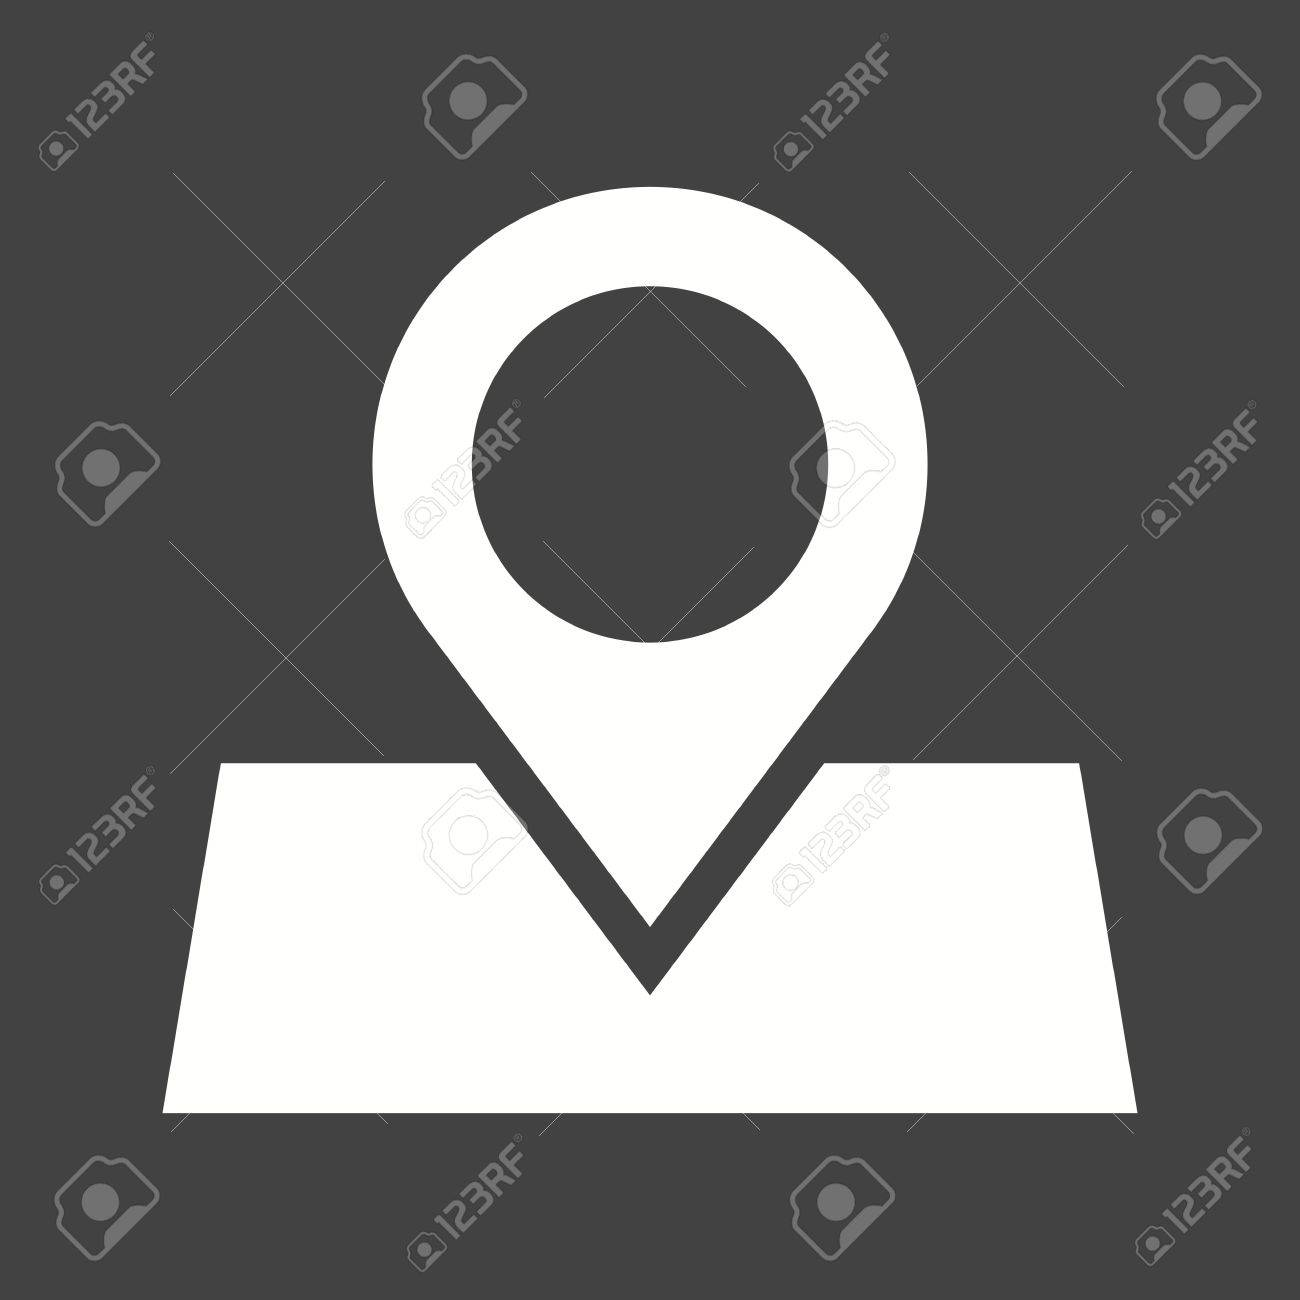 Marked, roadmap, route icon vector image Can also be used for